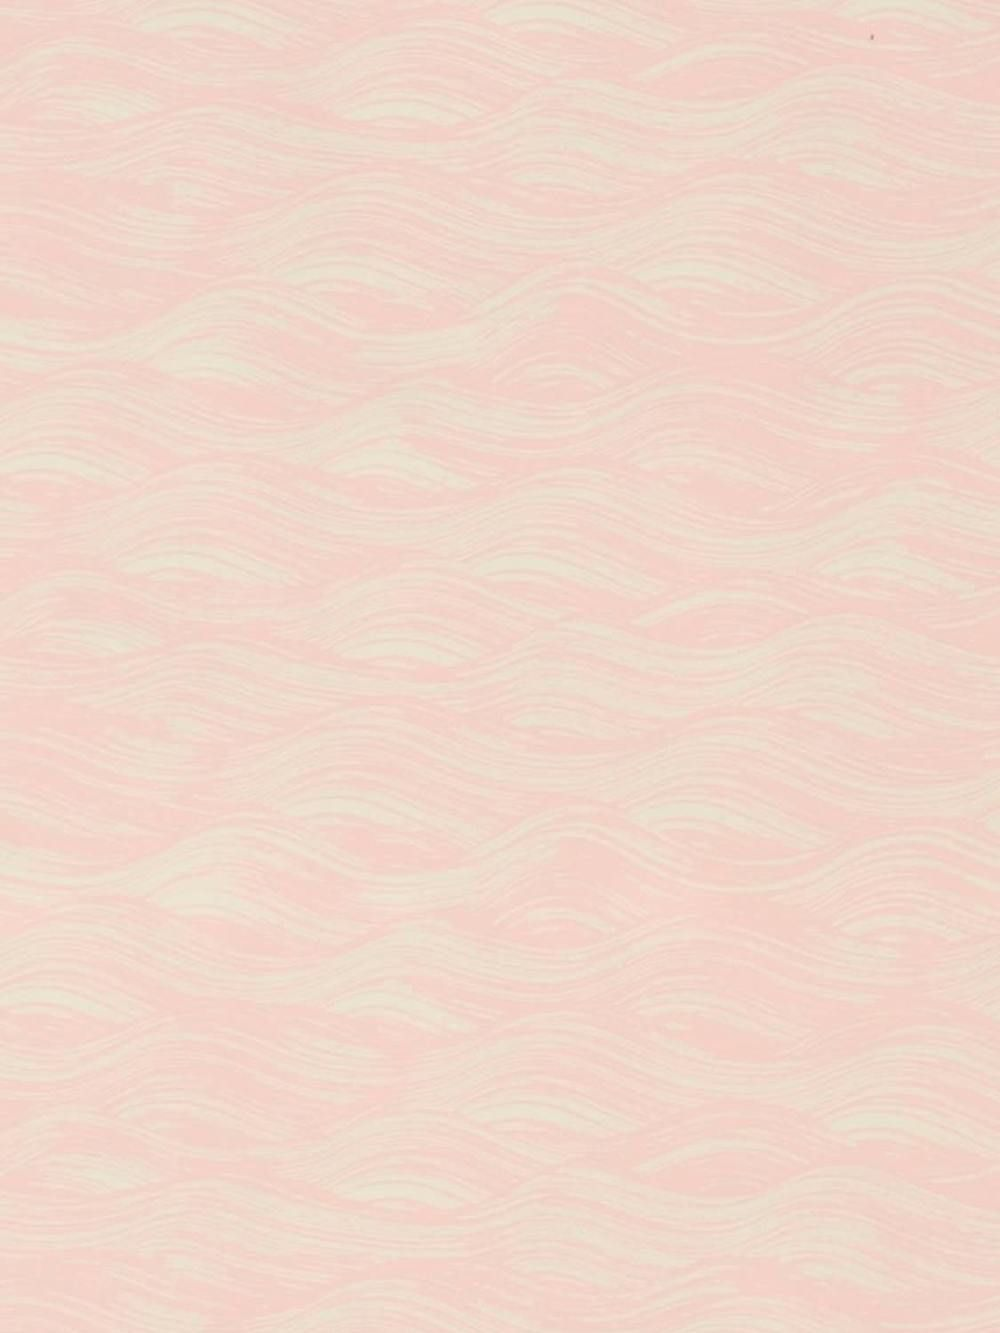 Painted Wave Wallpaper In Blush Pink Wallpaper Iphone Pink Background Dusty Pink Dusty pink color wallpaper